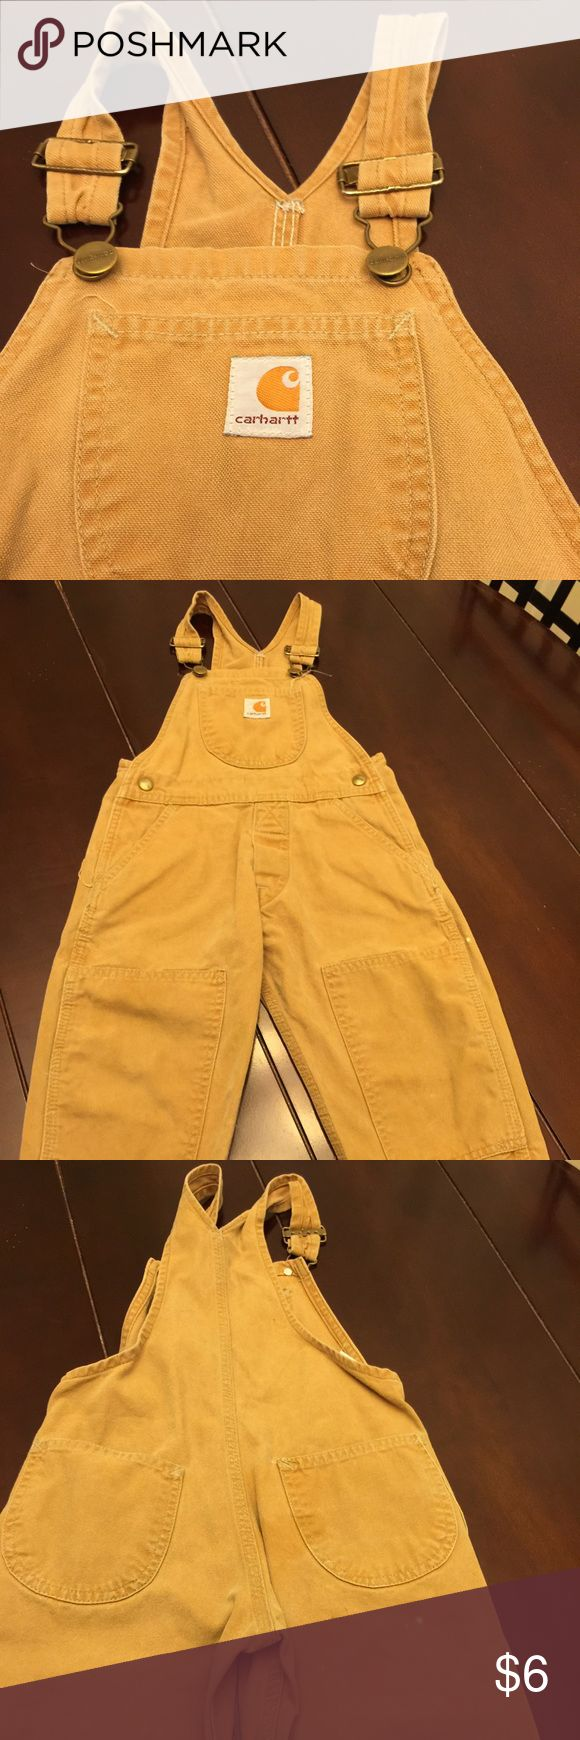 Carhartt bib overalls 3T Carhartt bib overalls.  Well loved still has a lot of life left for your little country boy/gal. Priced accordingly Carhartt Jackets & Coats